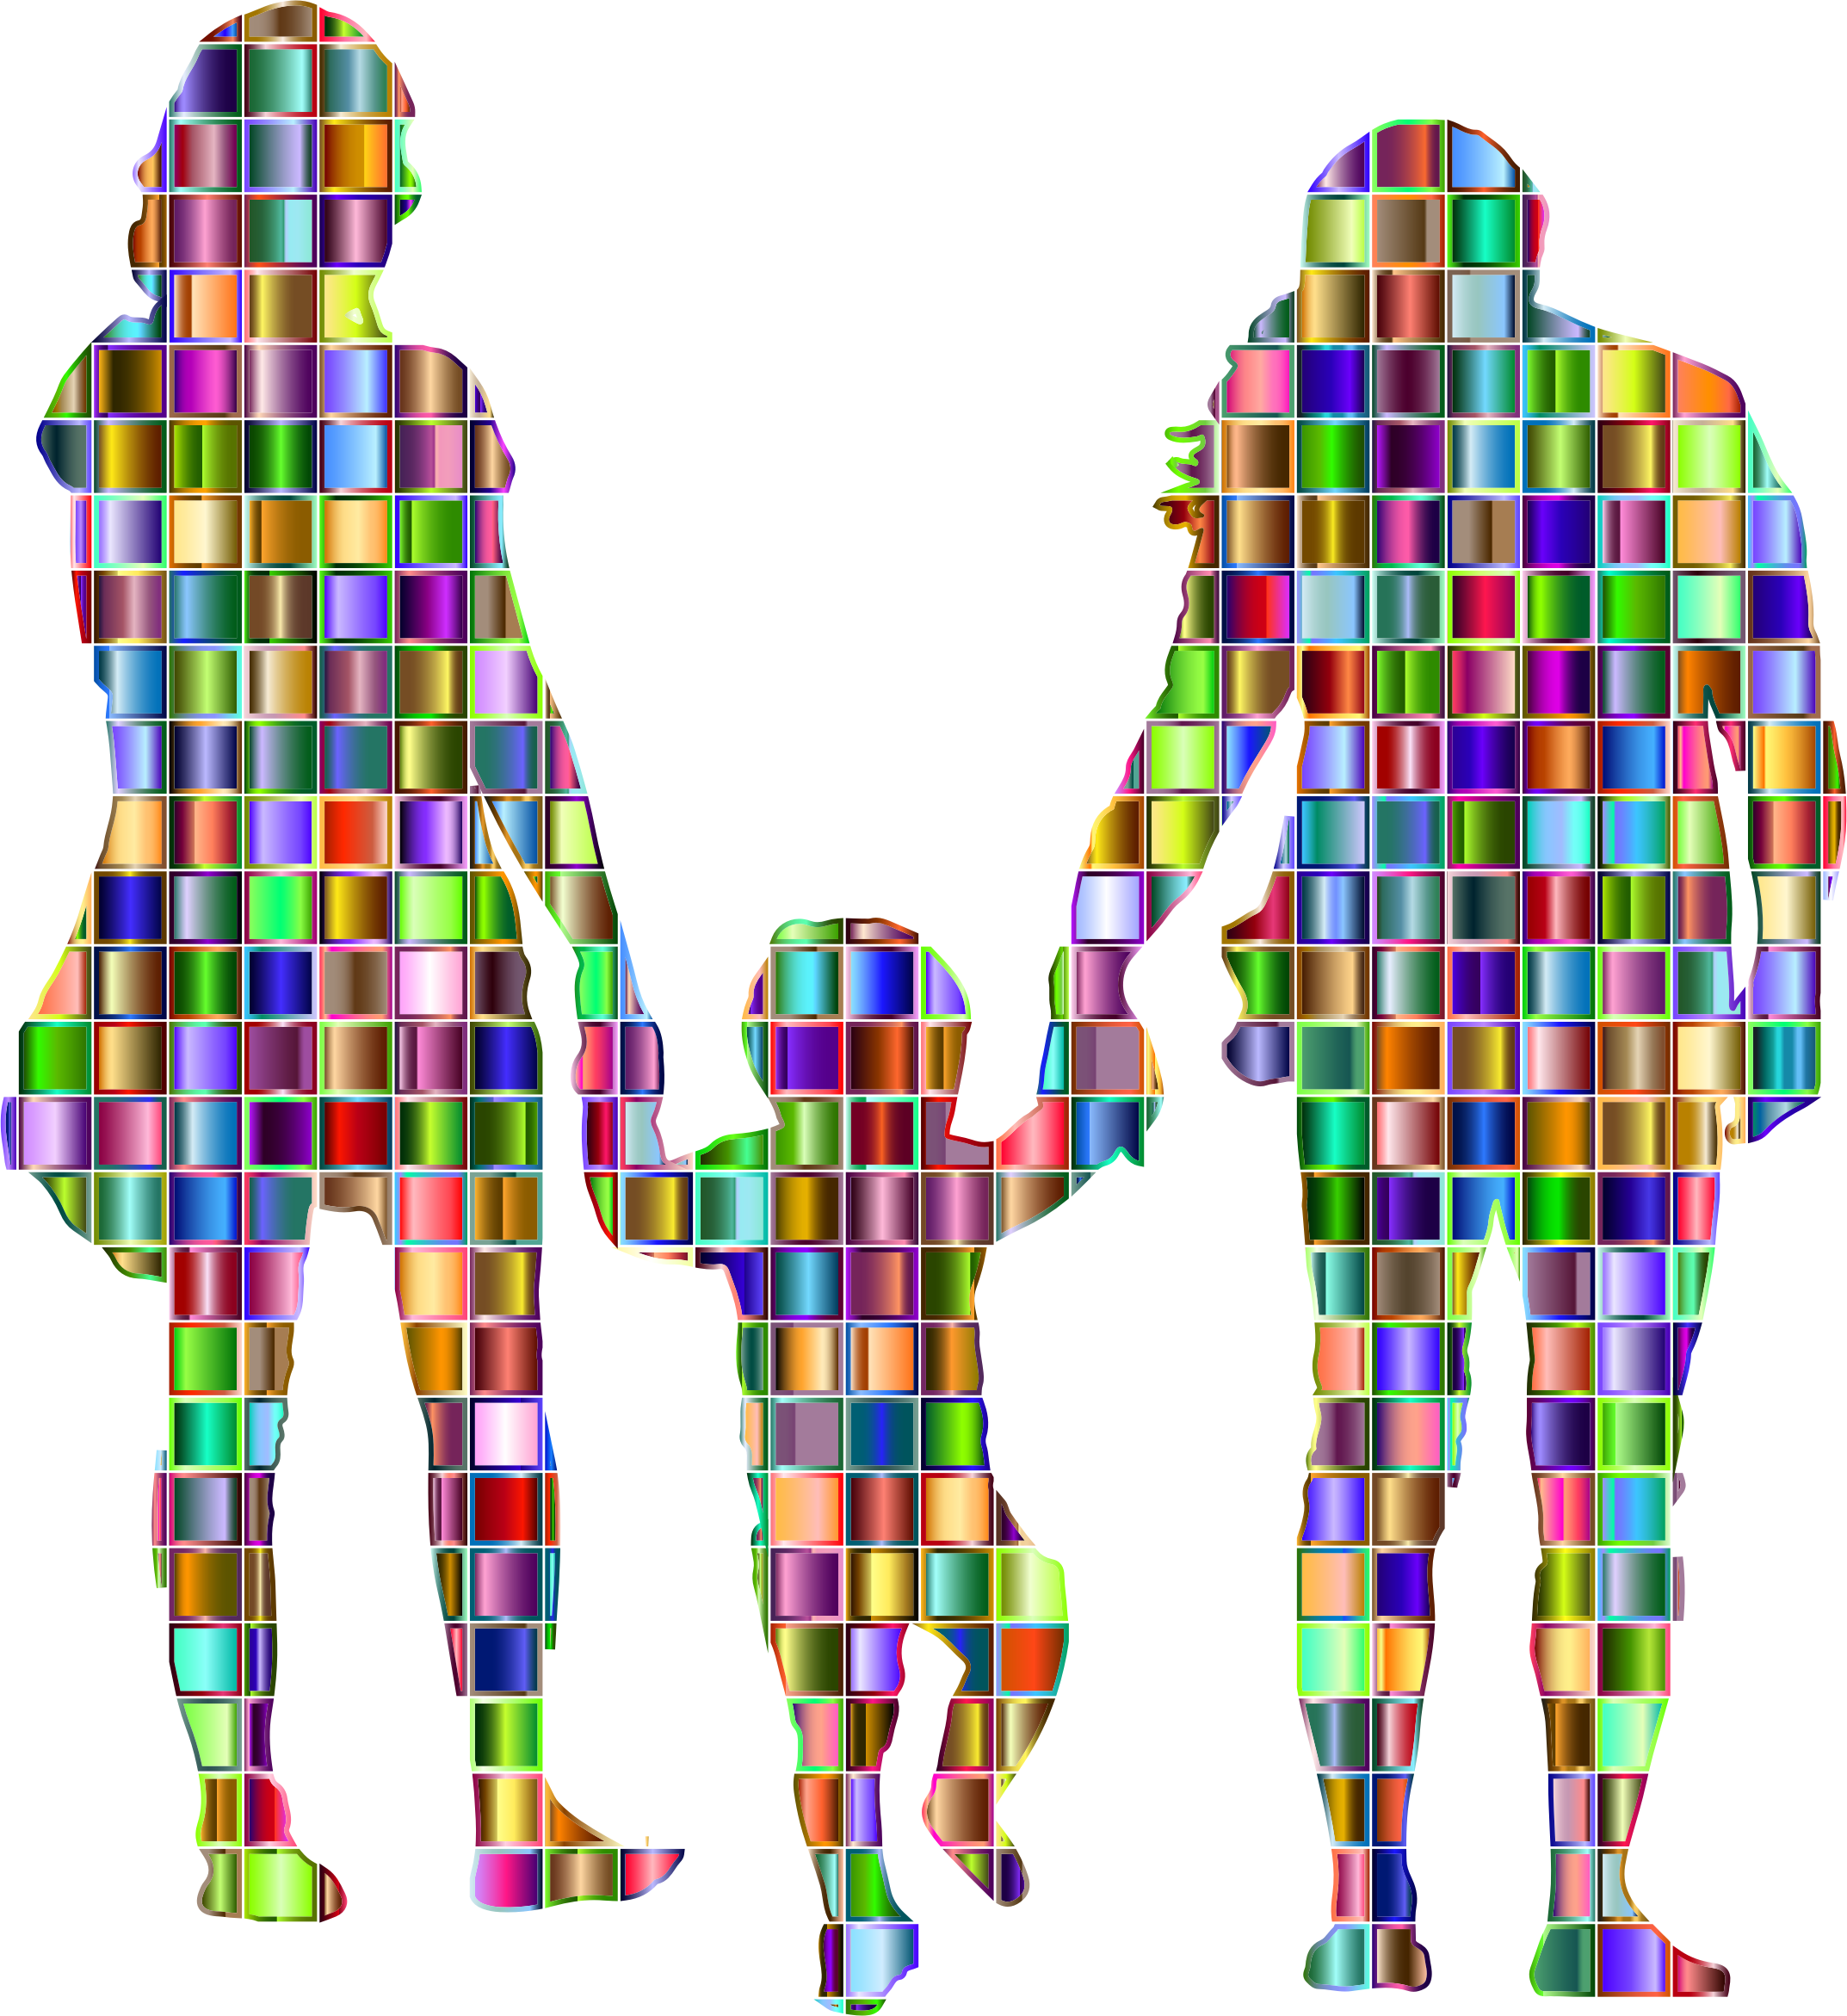 Chromatic Mosaic Squares Family With A Child In The Middle Silhouette by GDJ